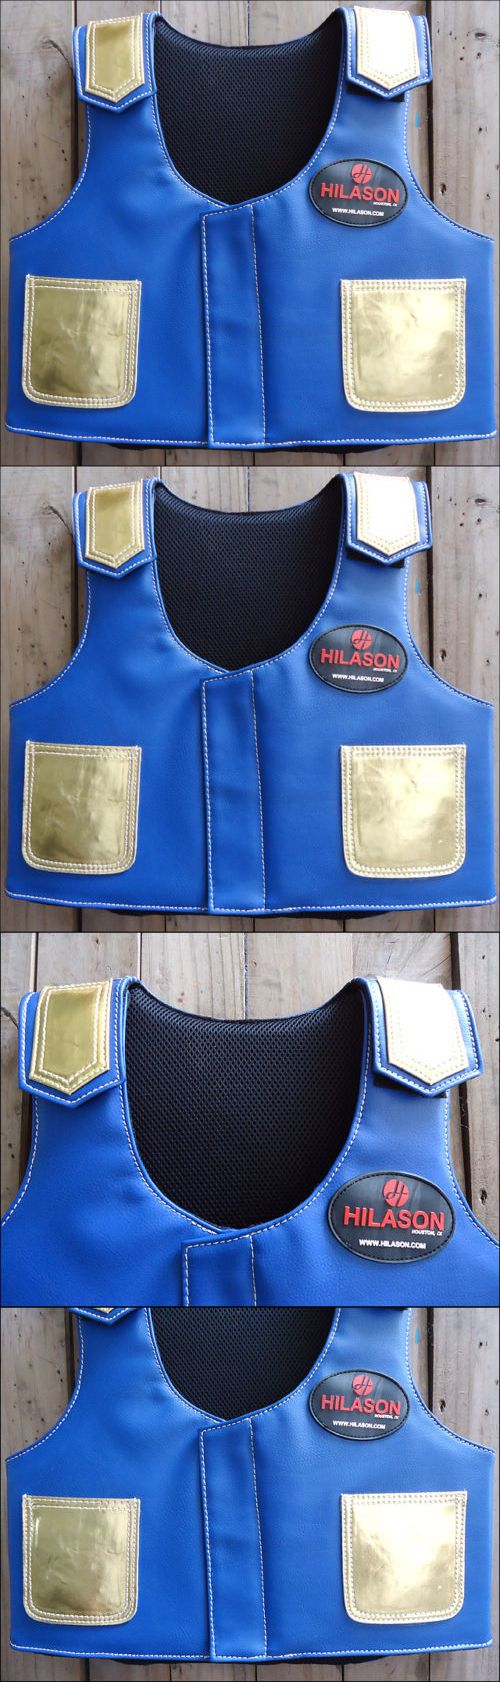 Other Protective Gear 87446: Pv812ya Hilason Kids Junior Youth Horse Riding Pro Rodeo Leather Protective Vest -> BUY IT NOW ONLY: $79.95 on eBay!